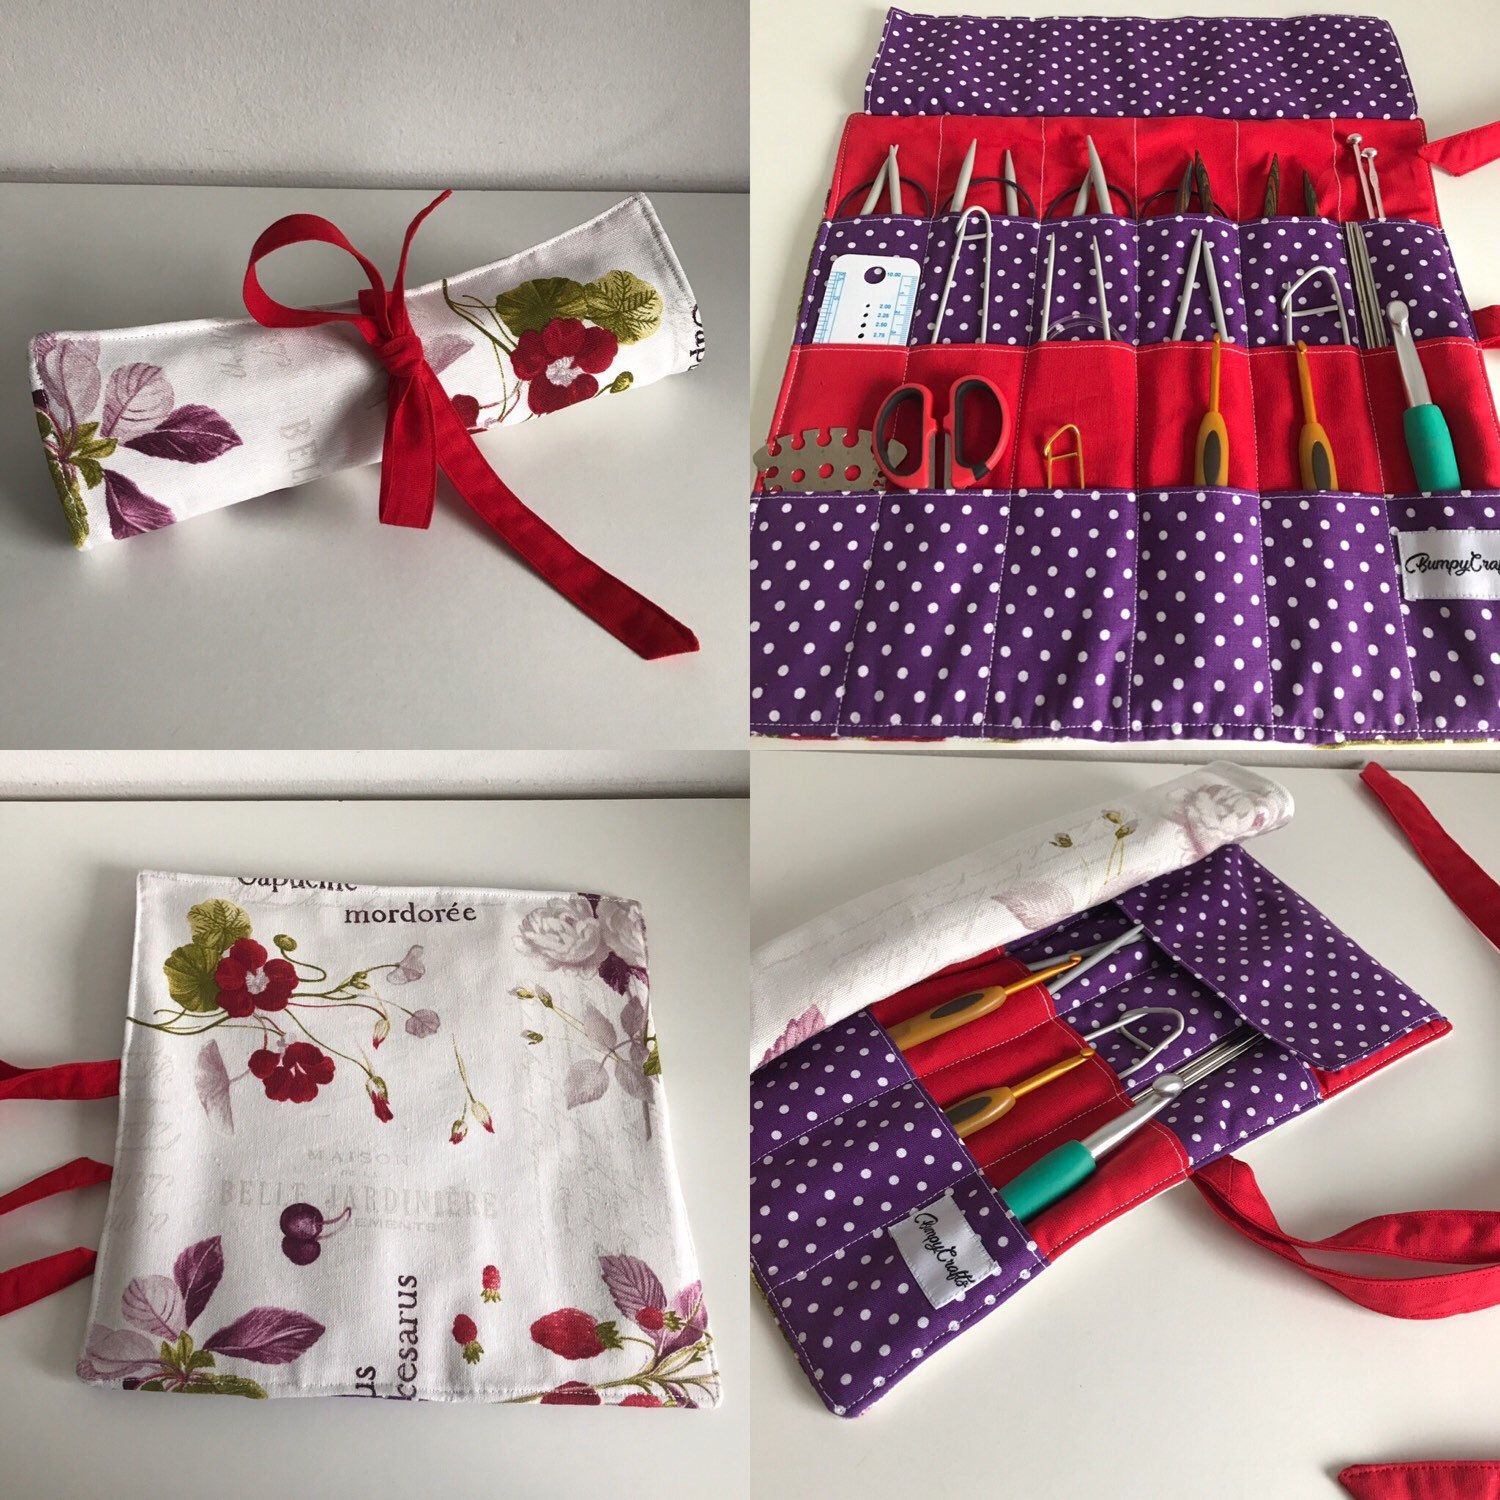 Strawberry and blueberry circular needle roll, knitting needle roll ...